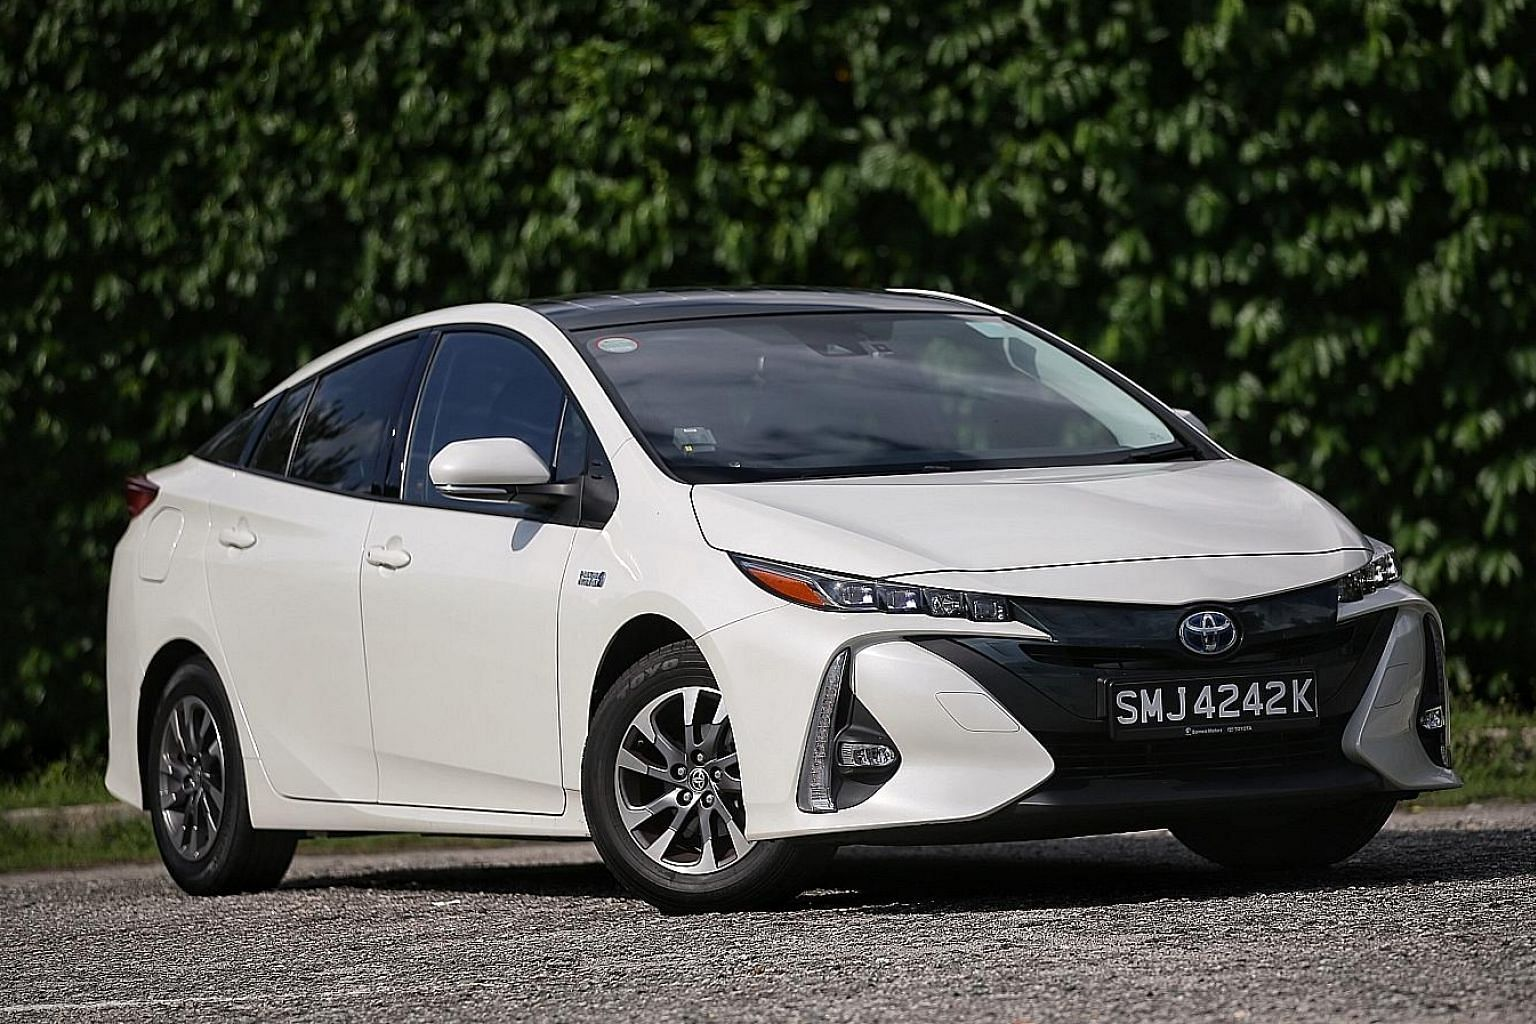 The Toyota Prius PHV has an electric range of about 50km and its lithium battery can be fully recharged in about three hours.